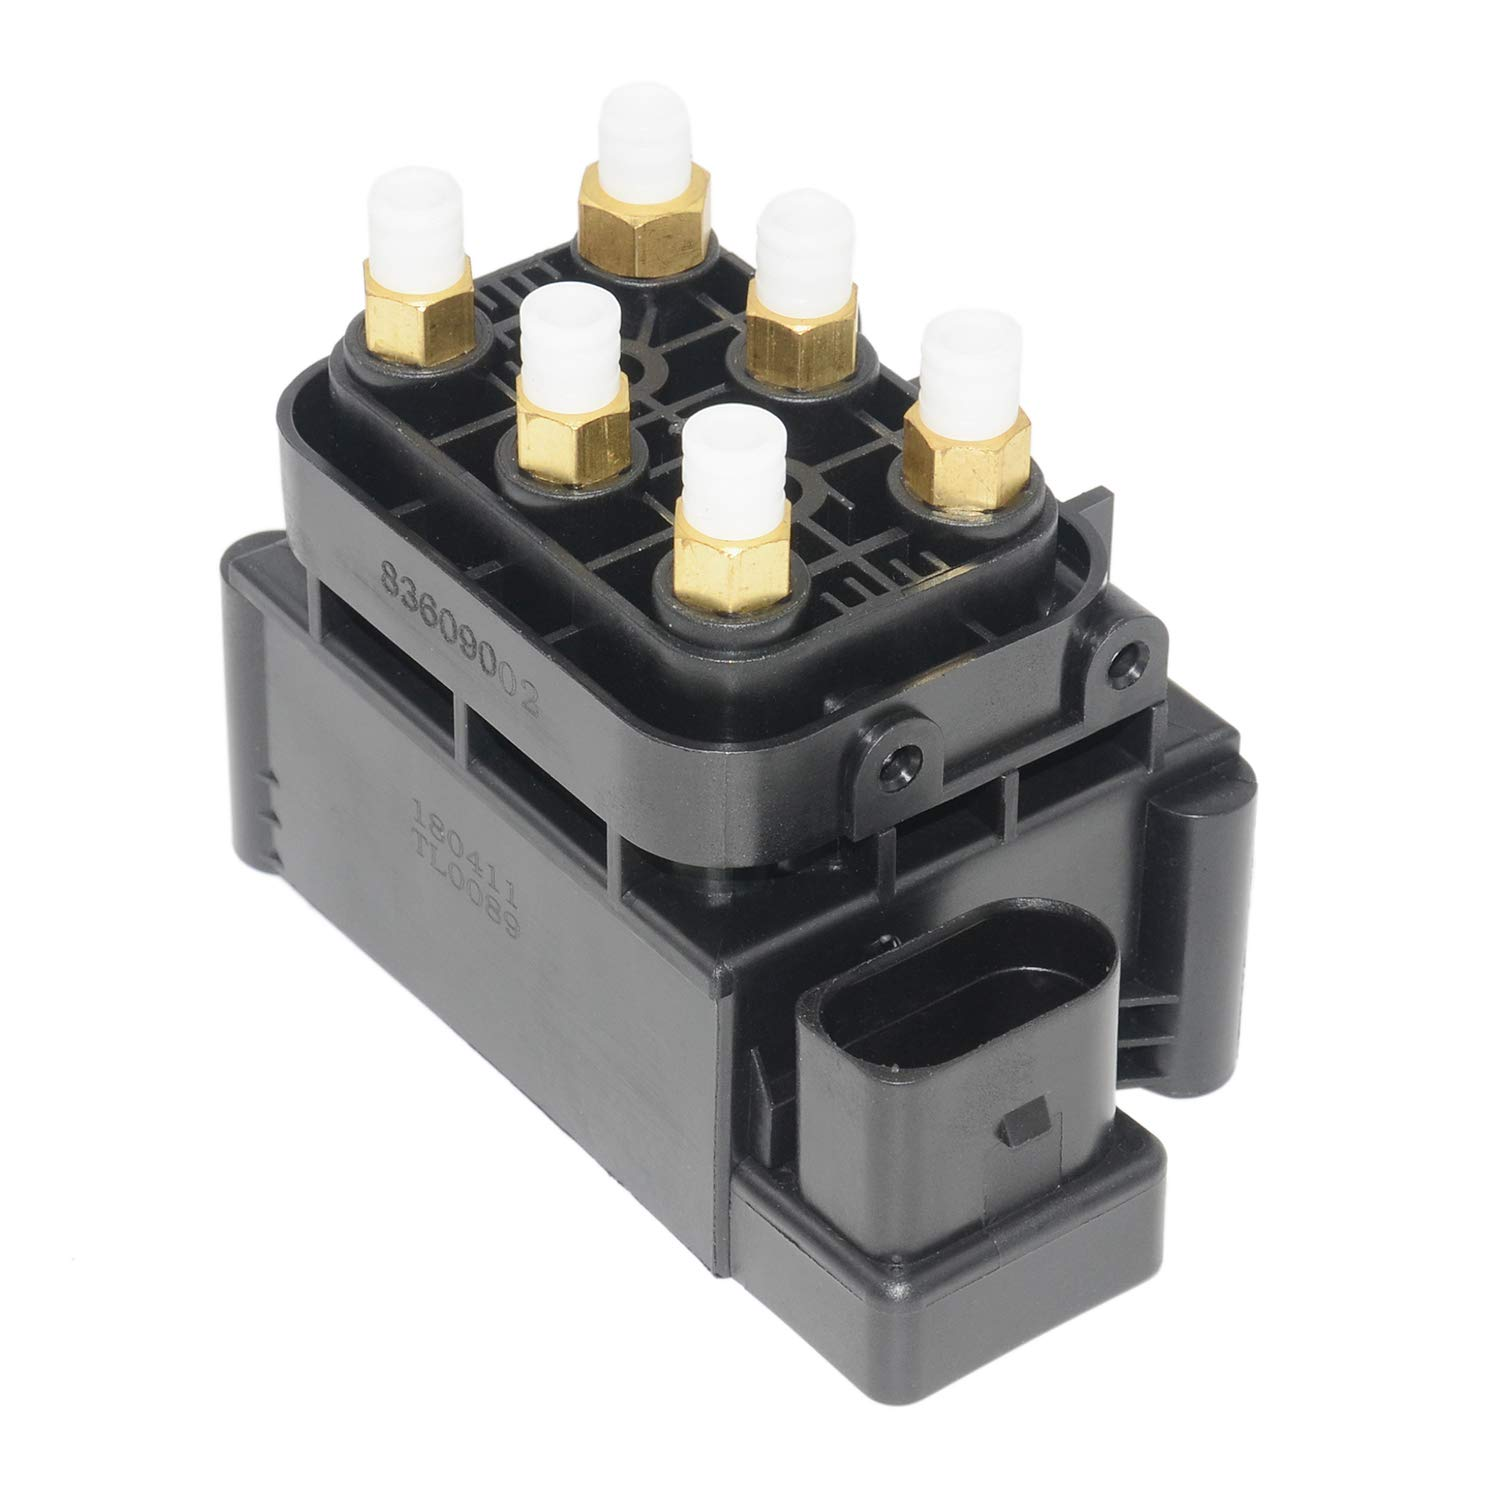 Air Suspension Solenoid Valve Compitable for Mercedes Benz W166 W164 W221 W251 2123200358 2513200058 GELUOXI